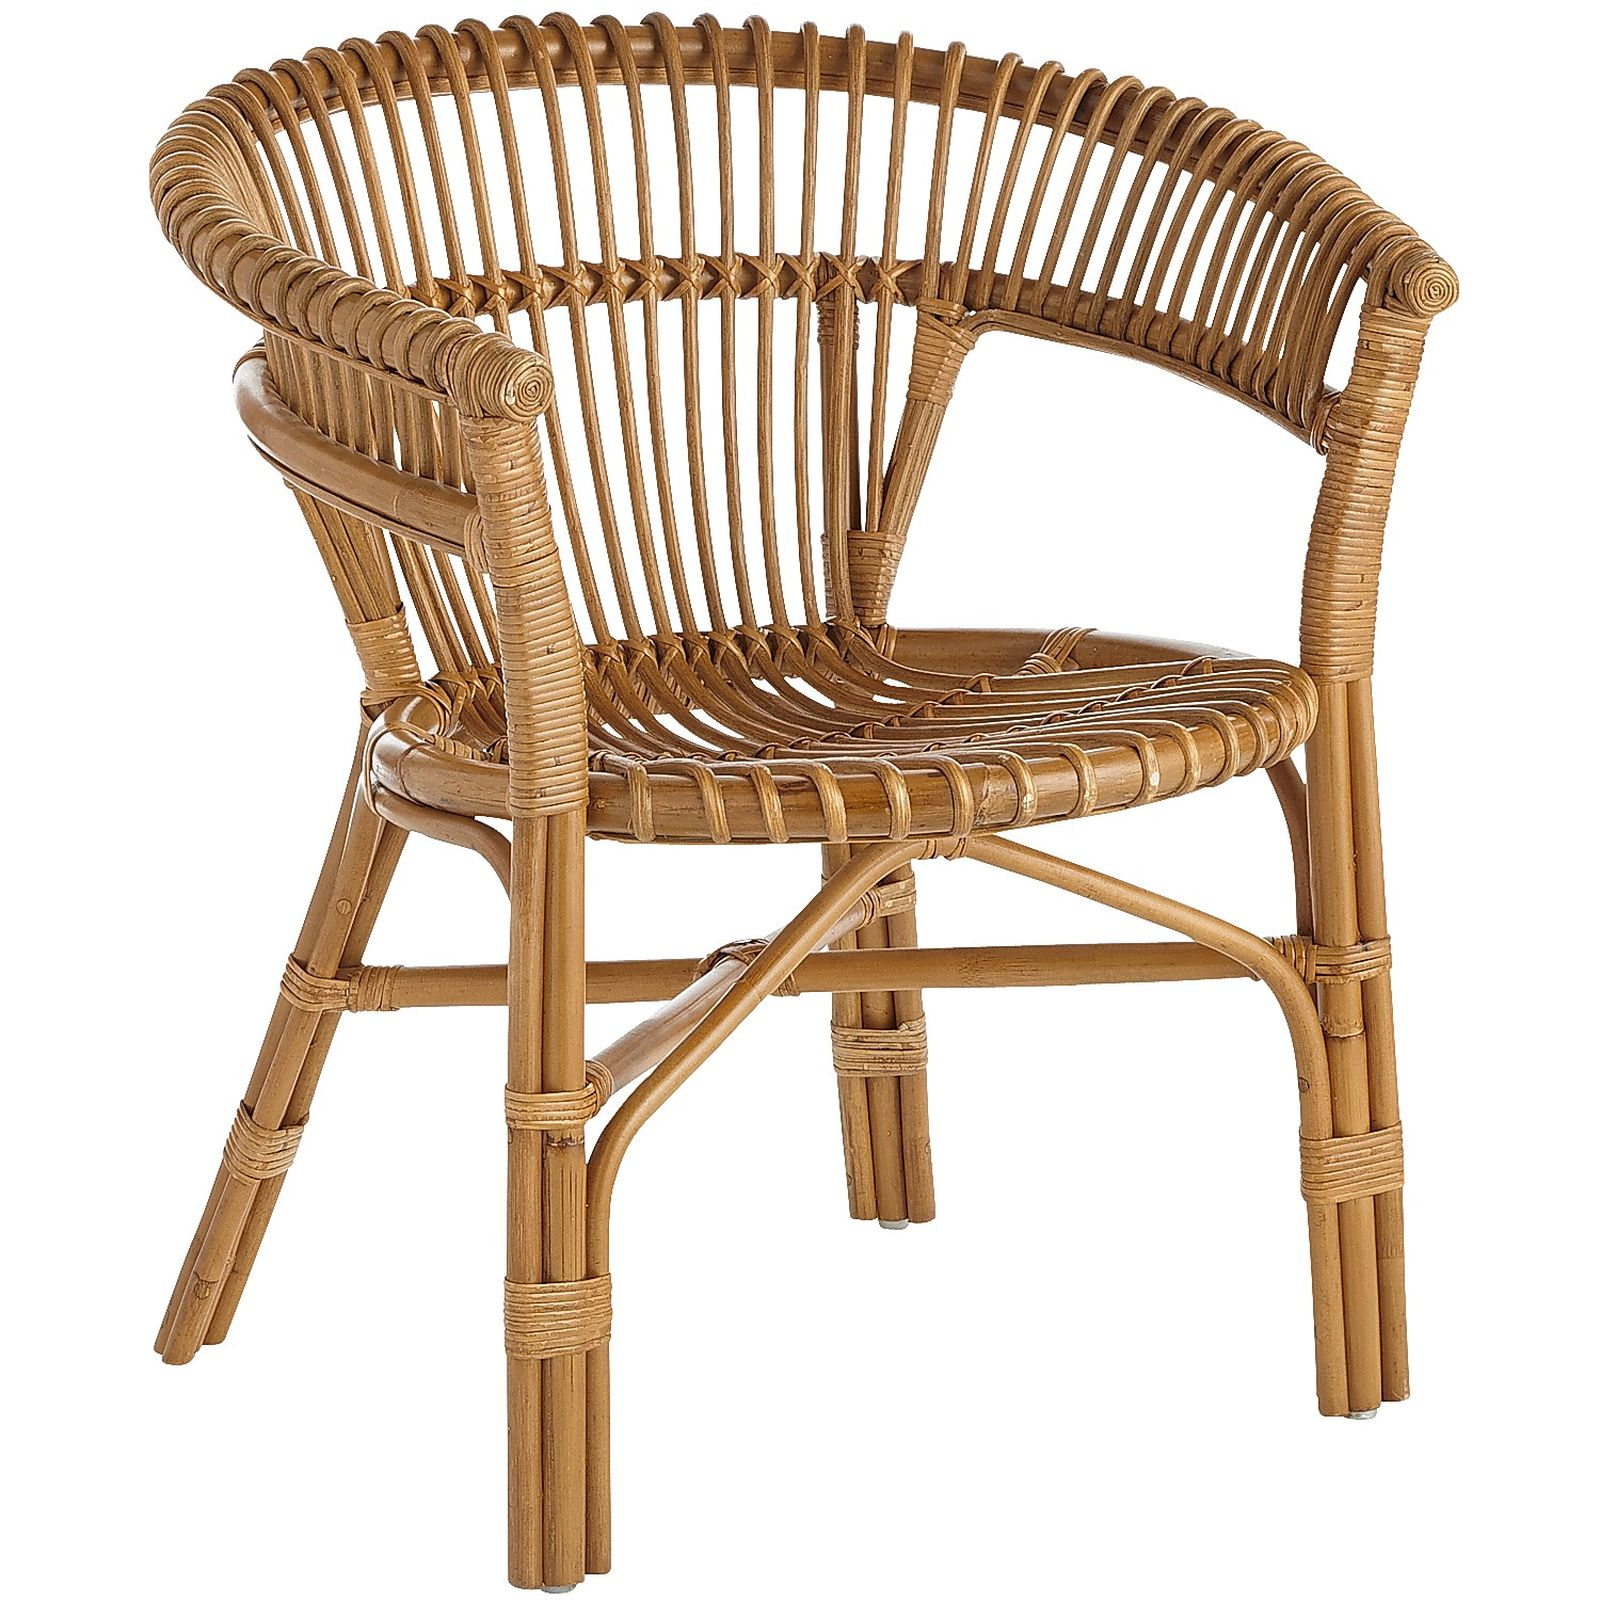 Pier One Wicker Furniture | Hanging Wicker Chair Pier One | Chairs at Pier One